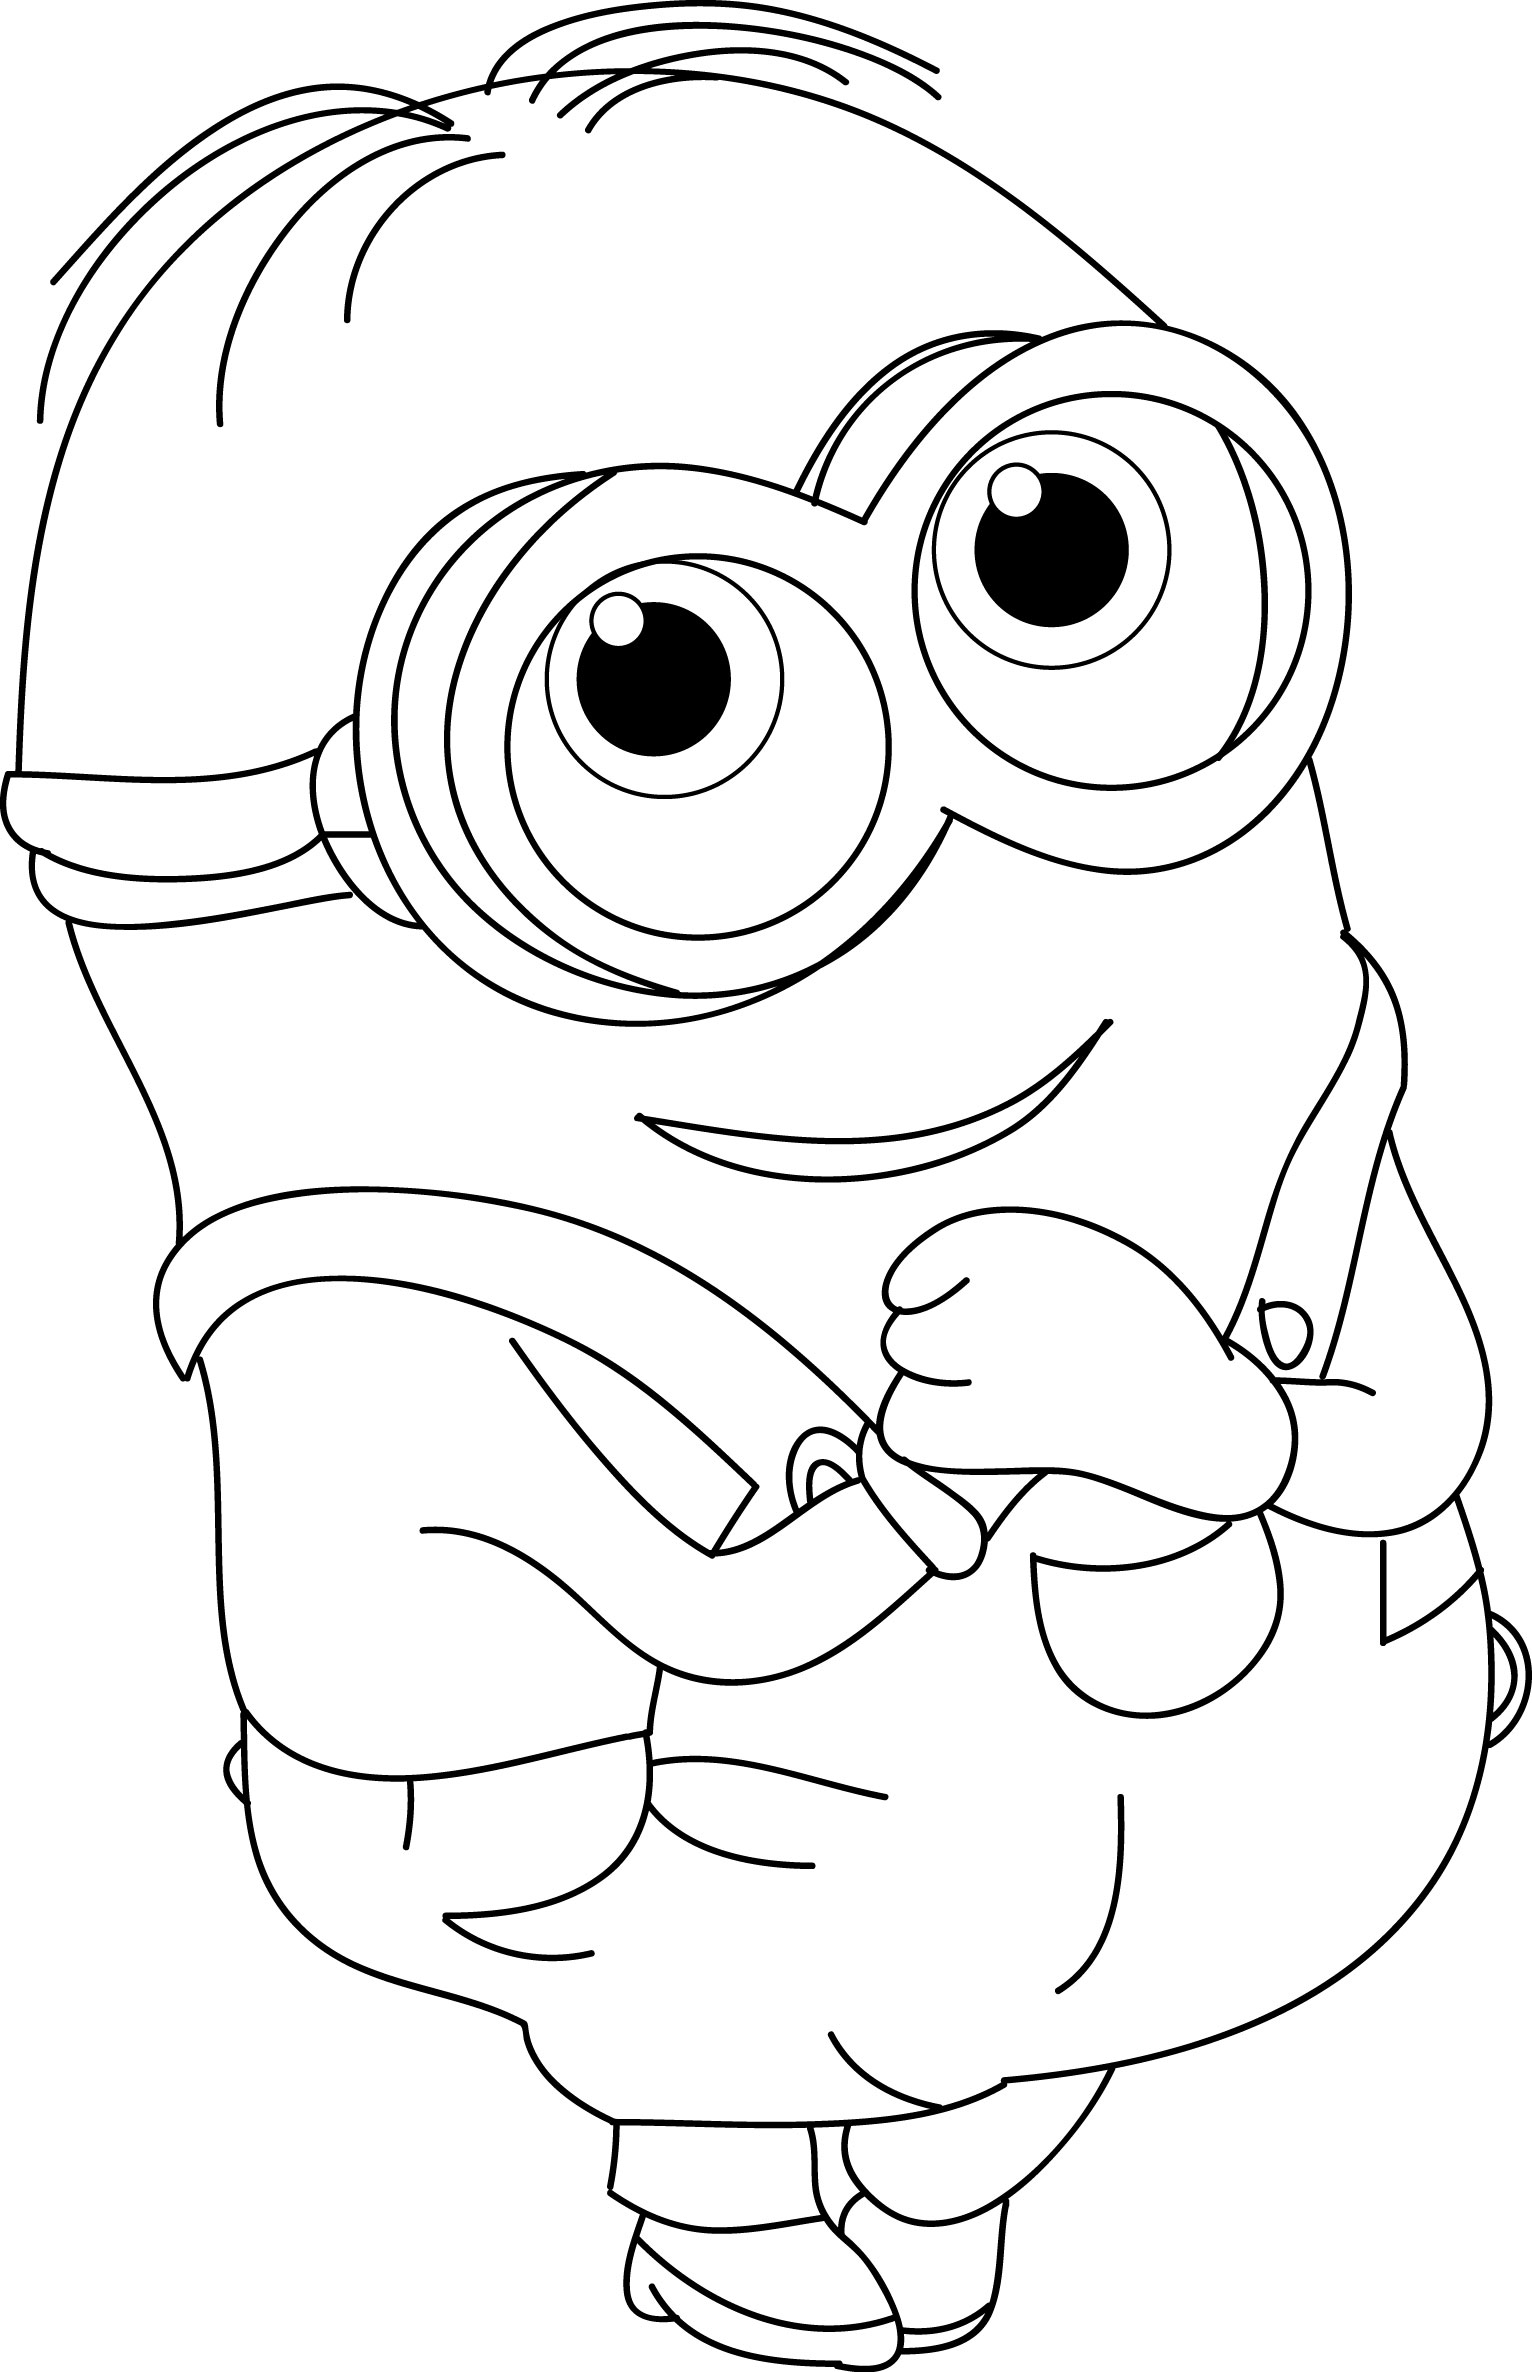 1532x2372 Awesome Minions Coloring Pages To Print Cartoon Minion Free